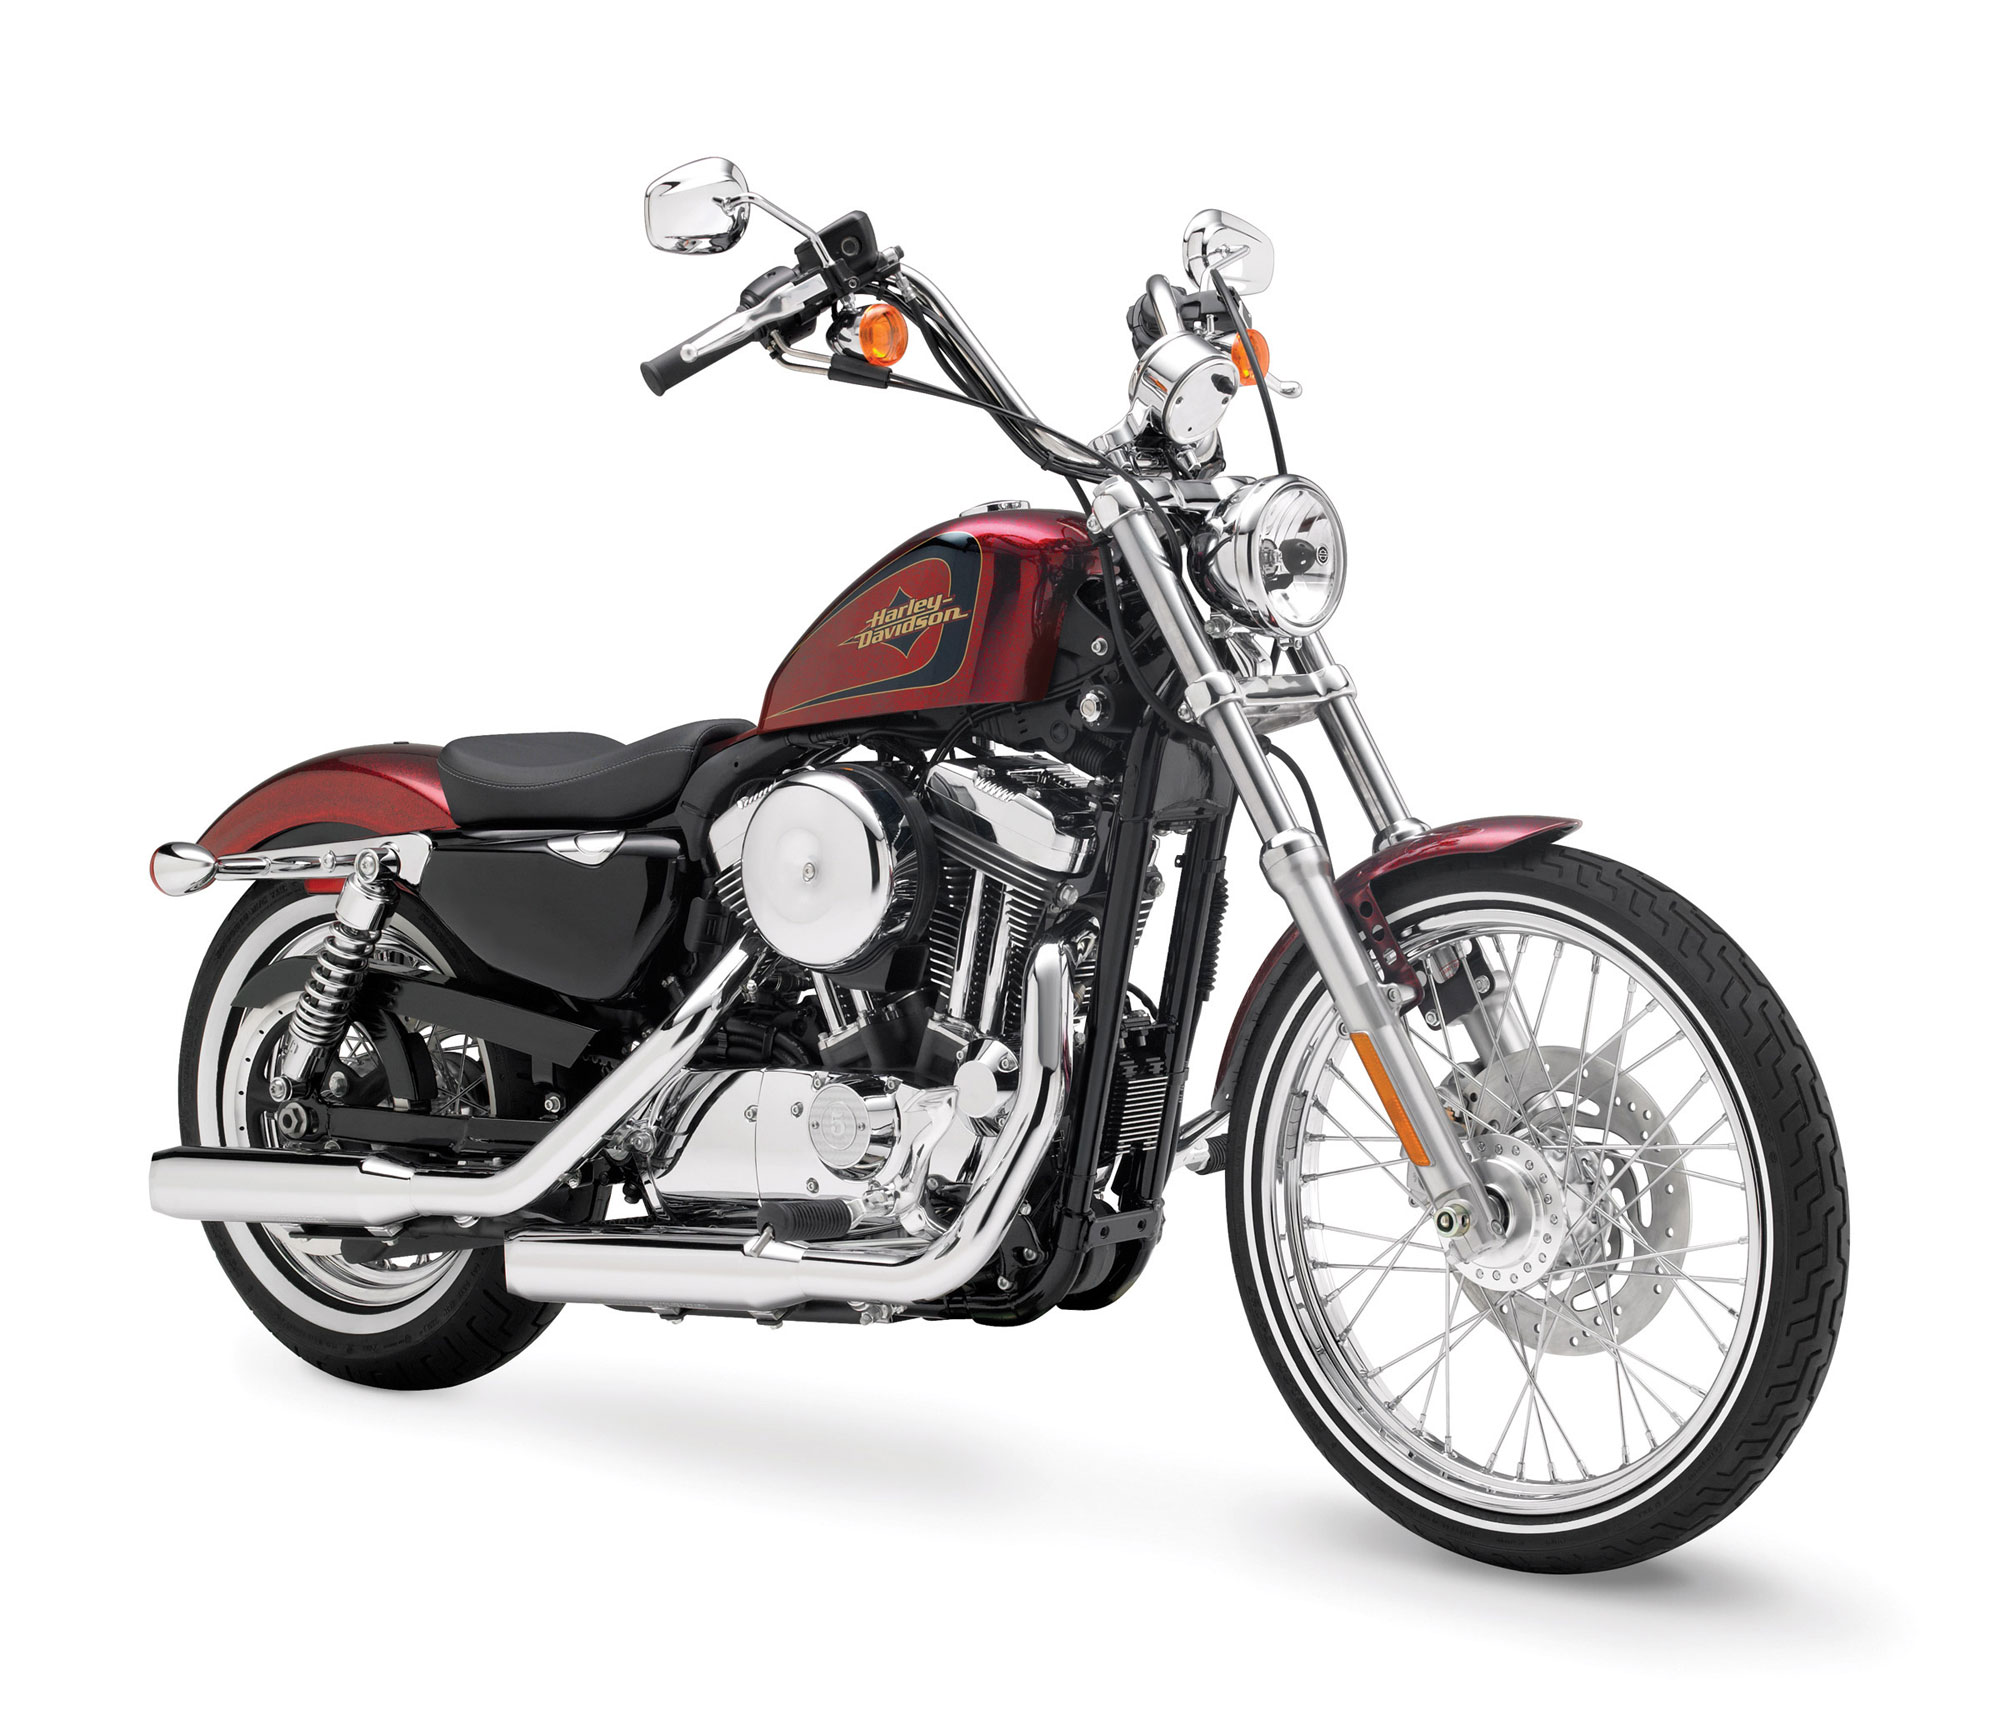 2012 Harley-Davidson XL1200V Seventy-Two Review